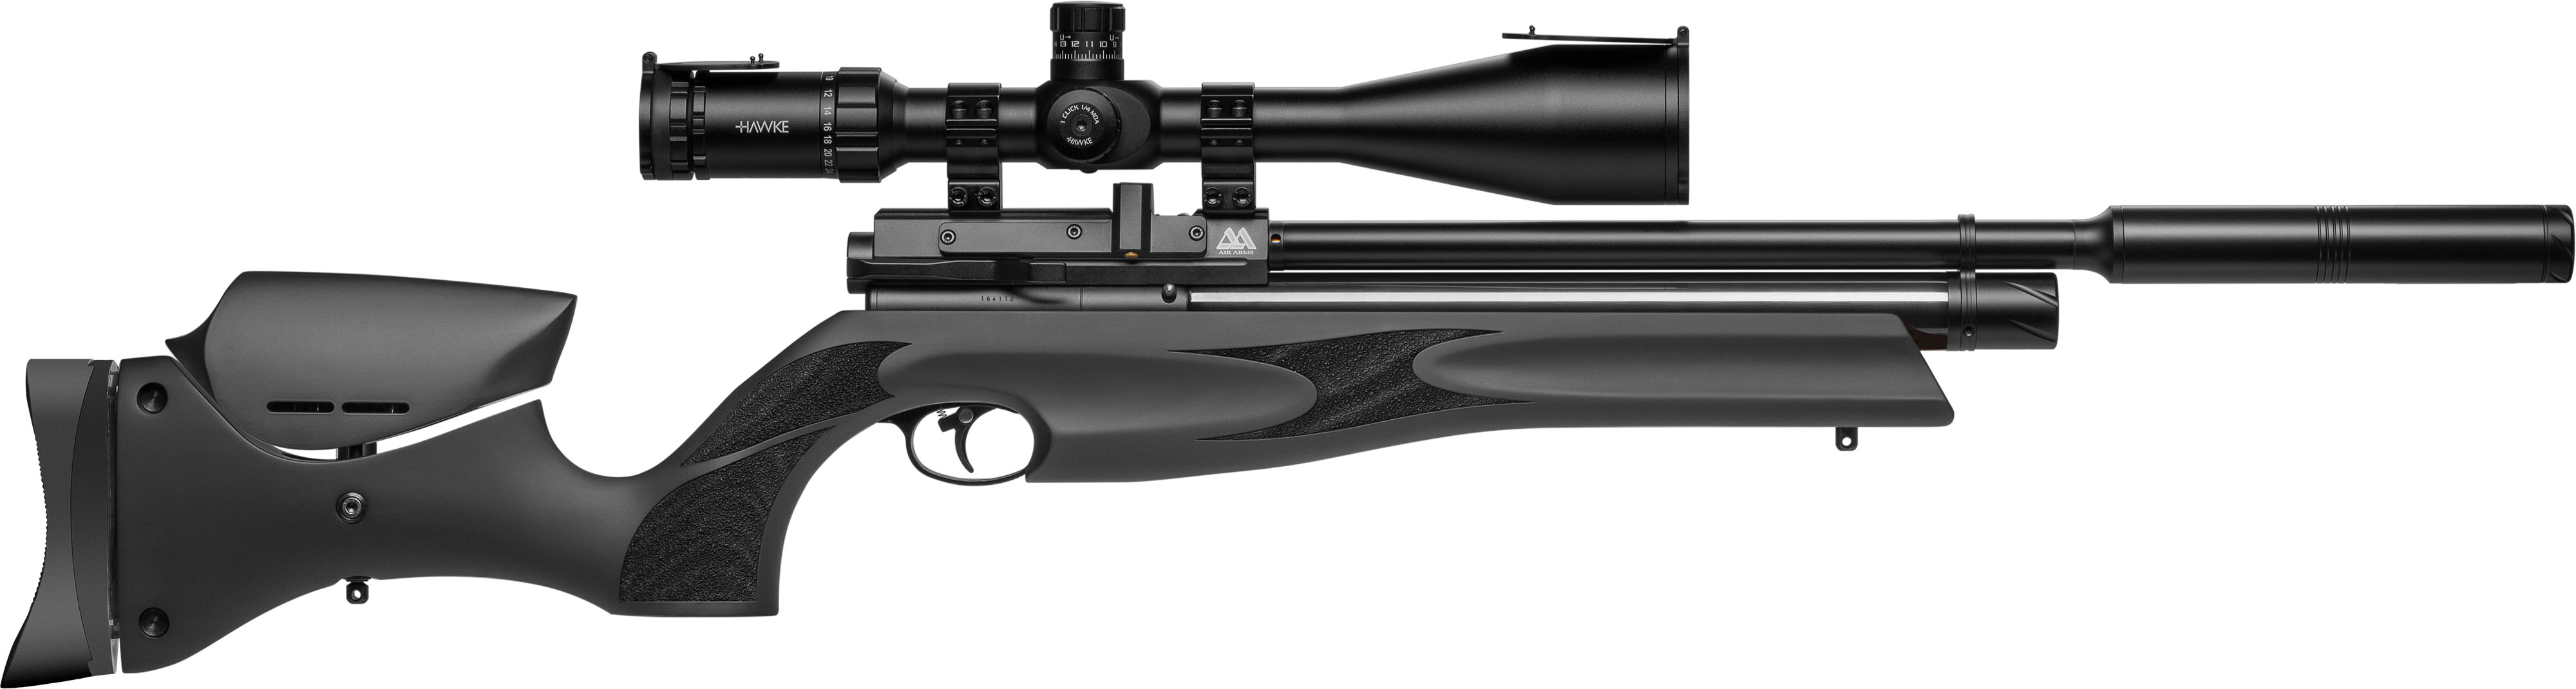 Air Arms - Ultimate Sporter Carbine - Black